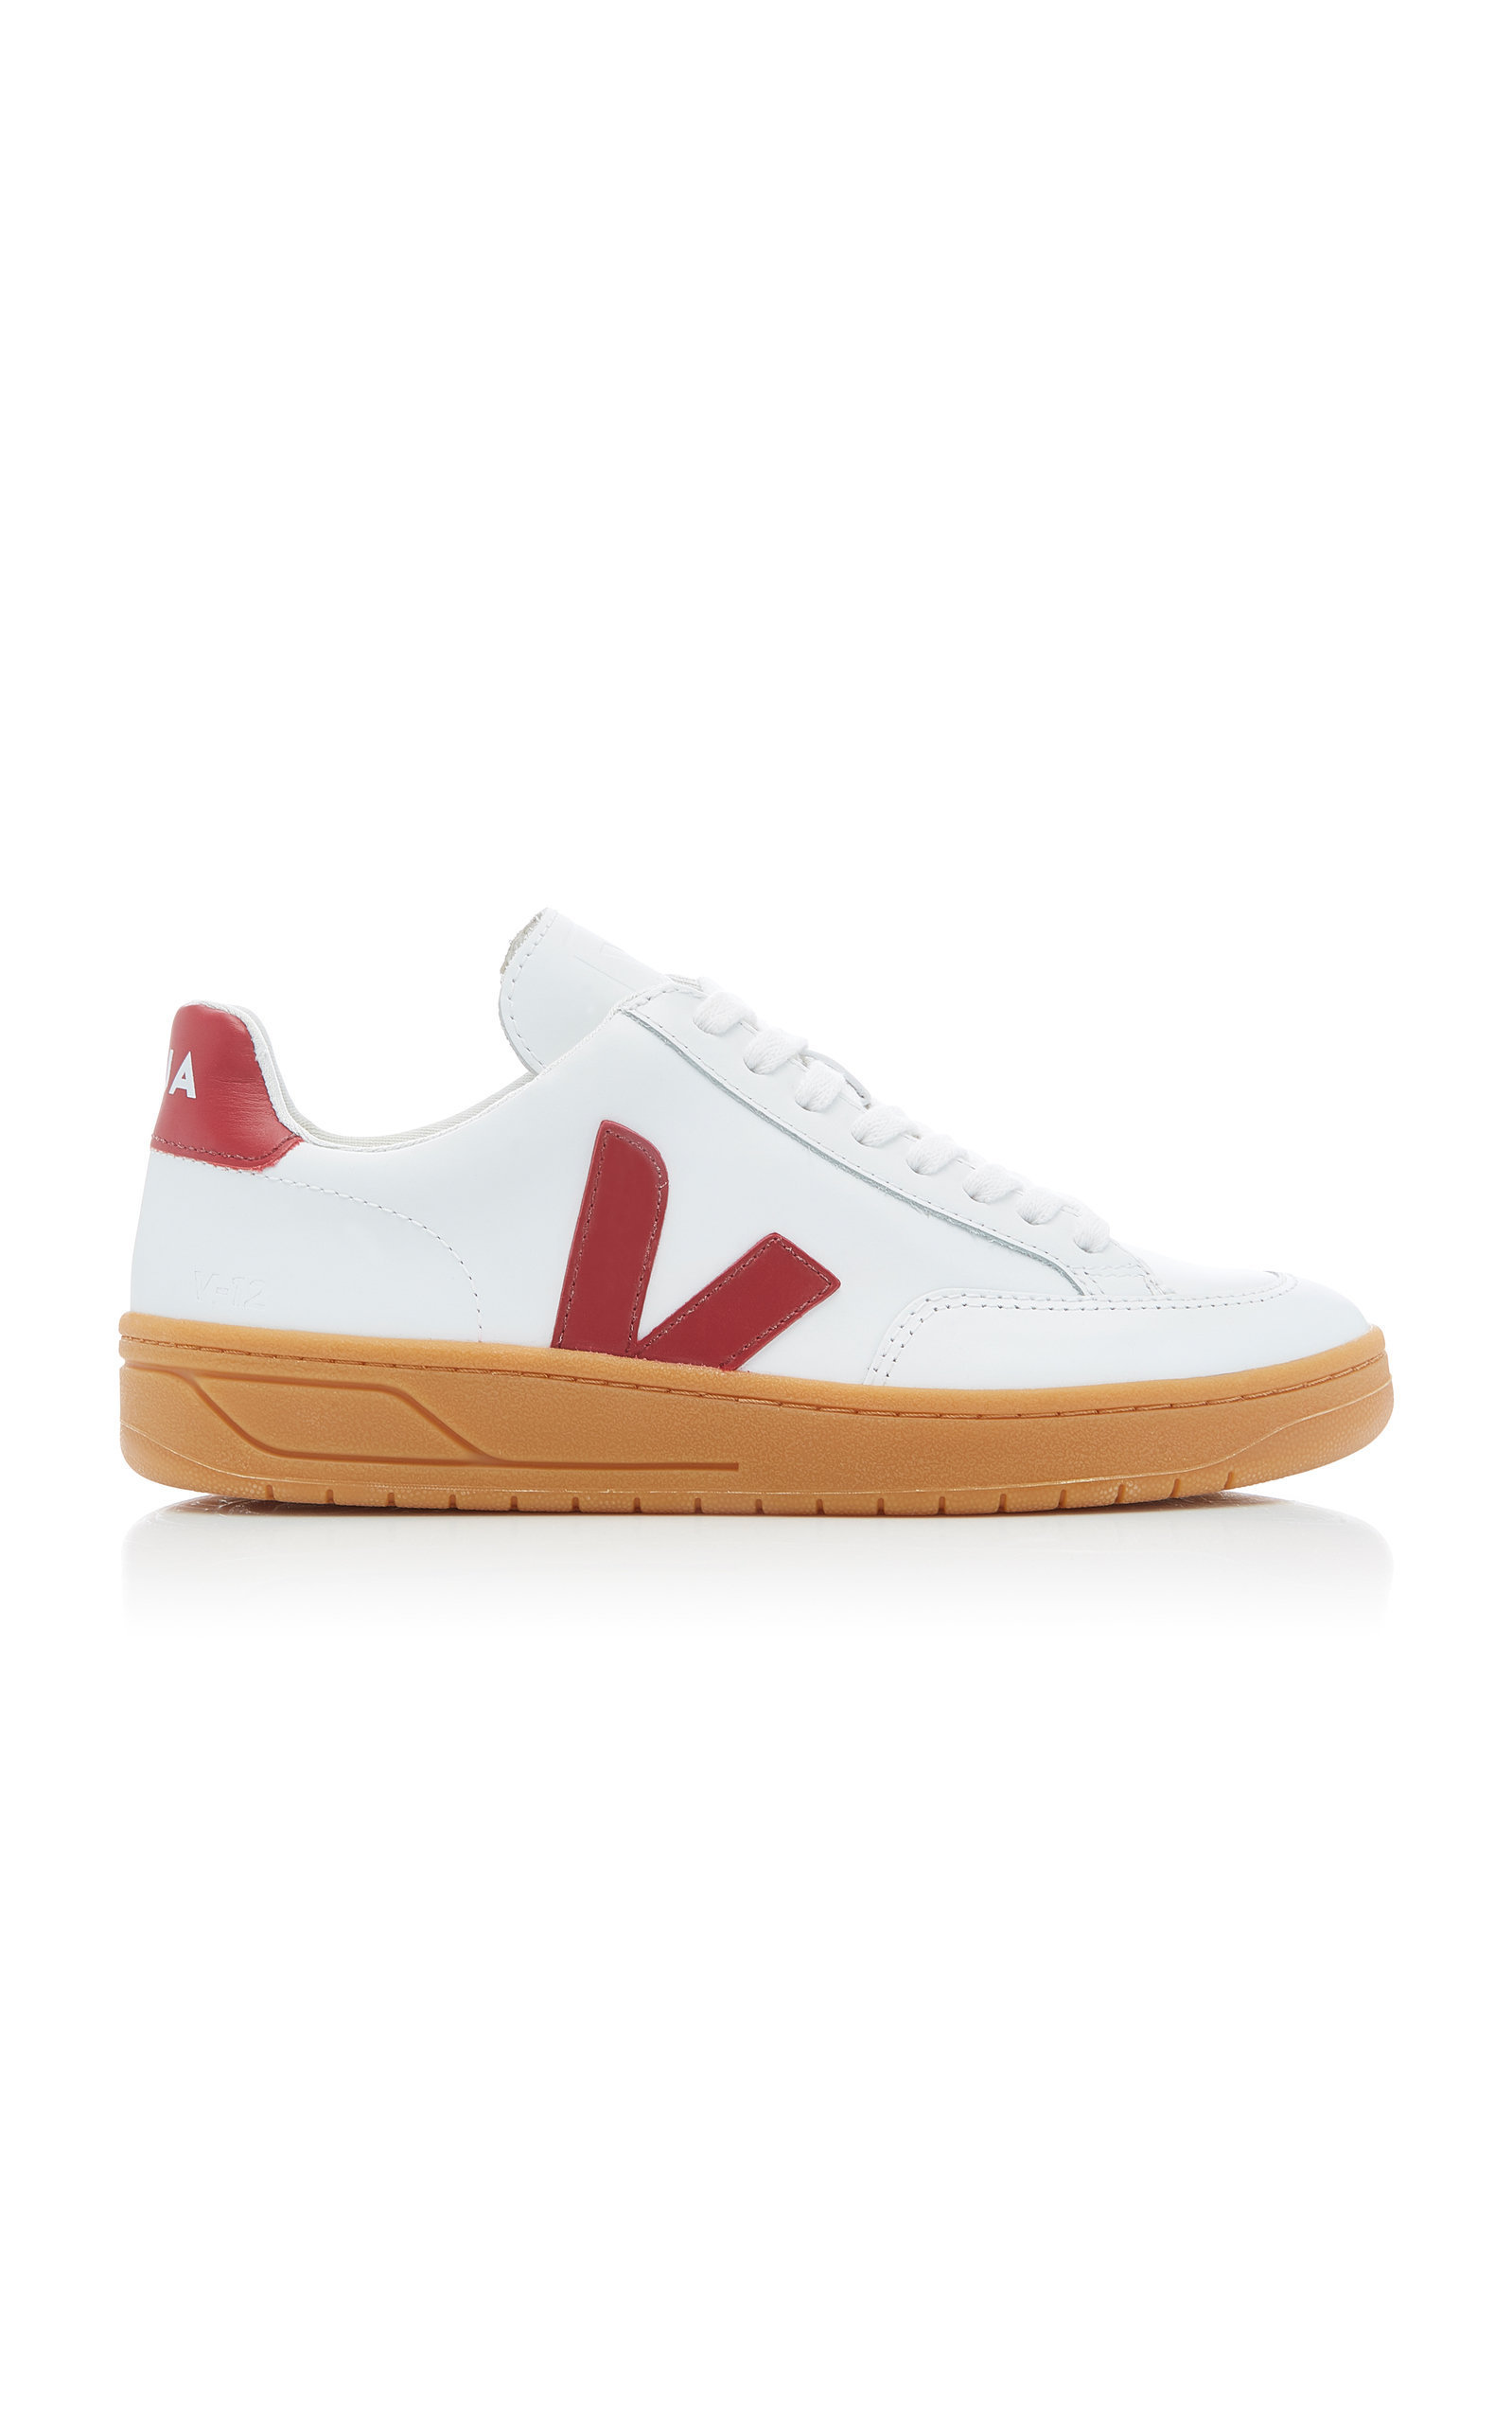 Veja Bastille Two-Tone Leather Sneakers In Red